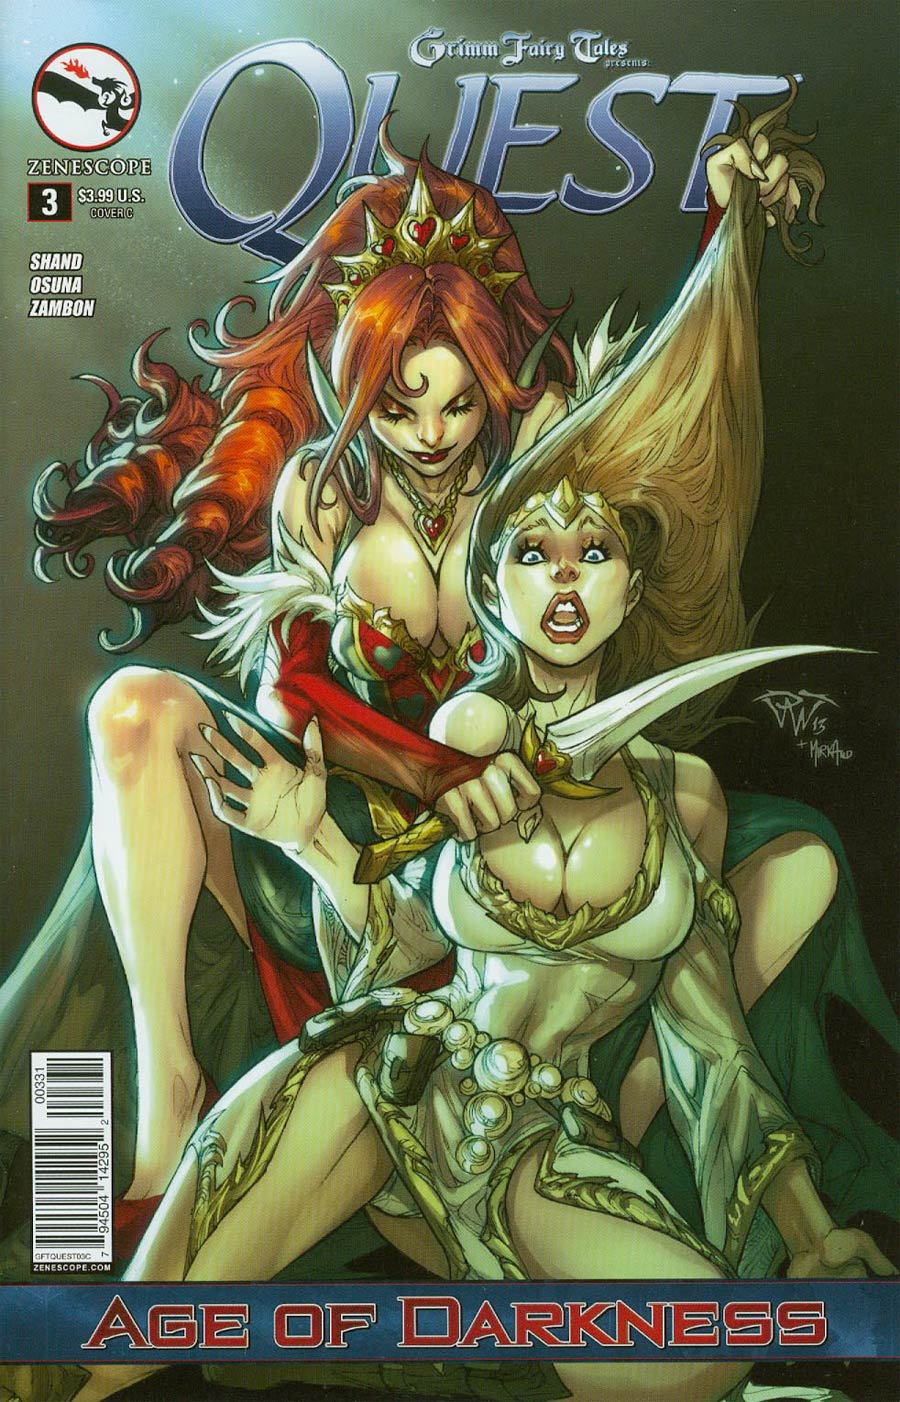 Grimm Fairy Tales Presents Quest #3 Cover C Paolo Pantalena (Age Of Darkness Tie-In)